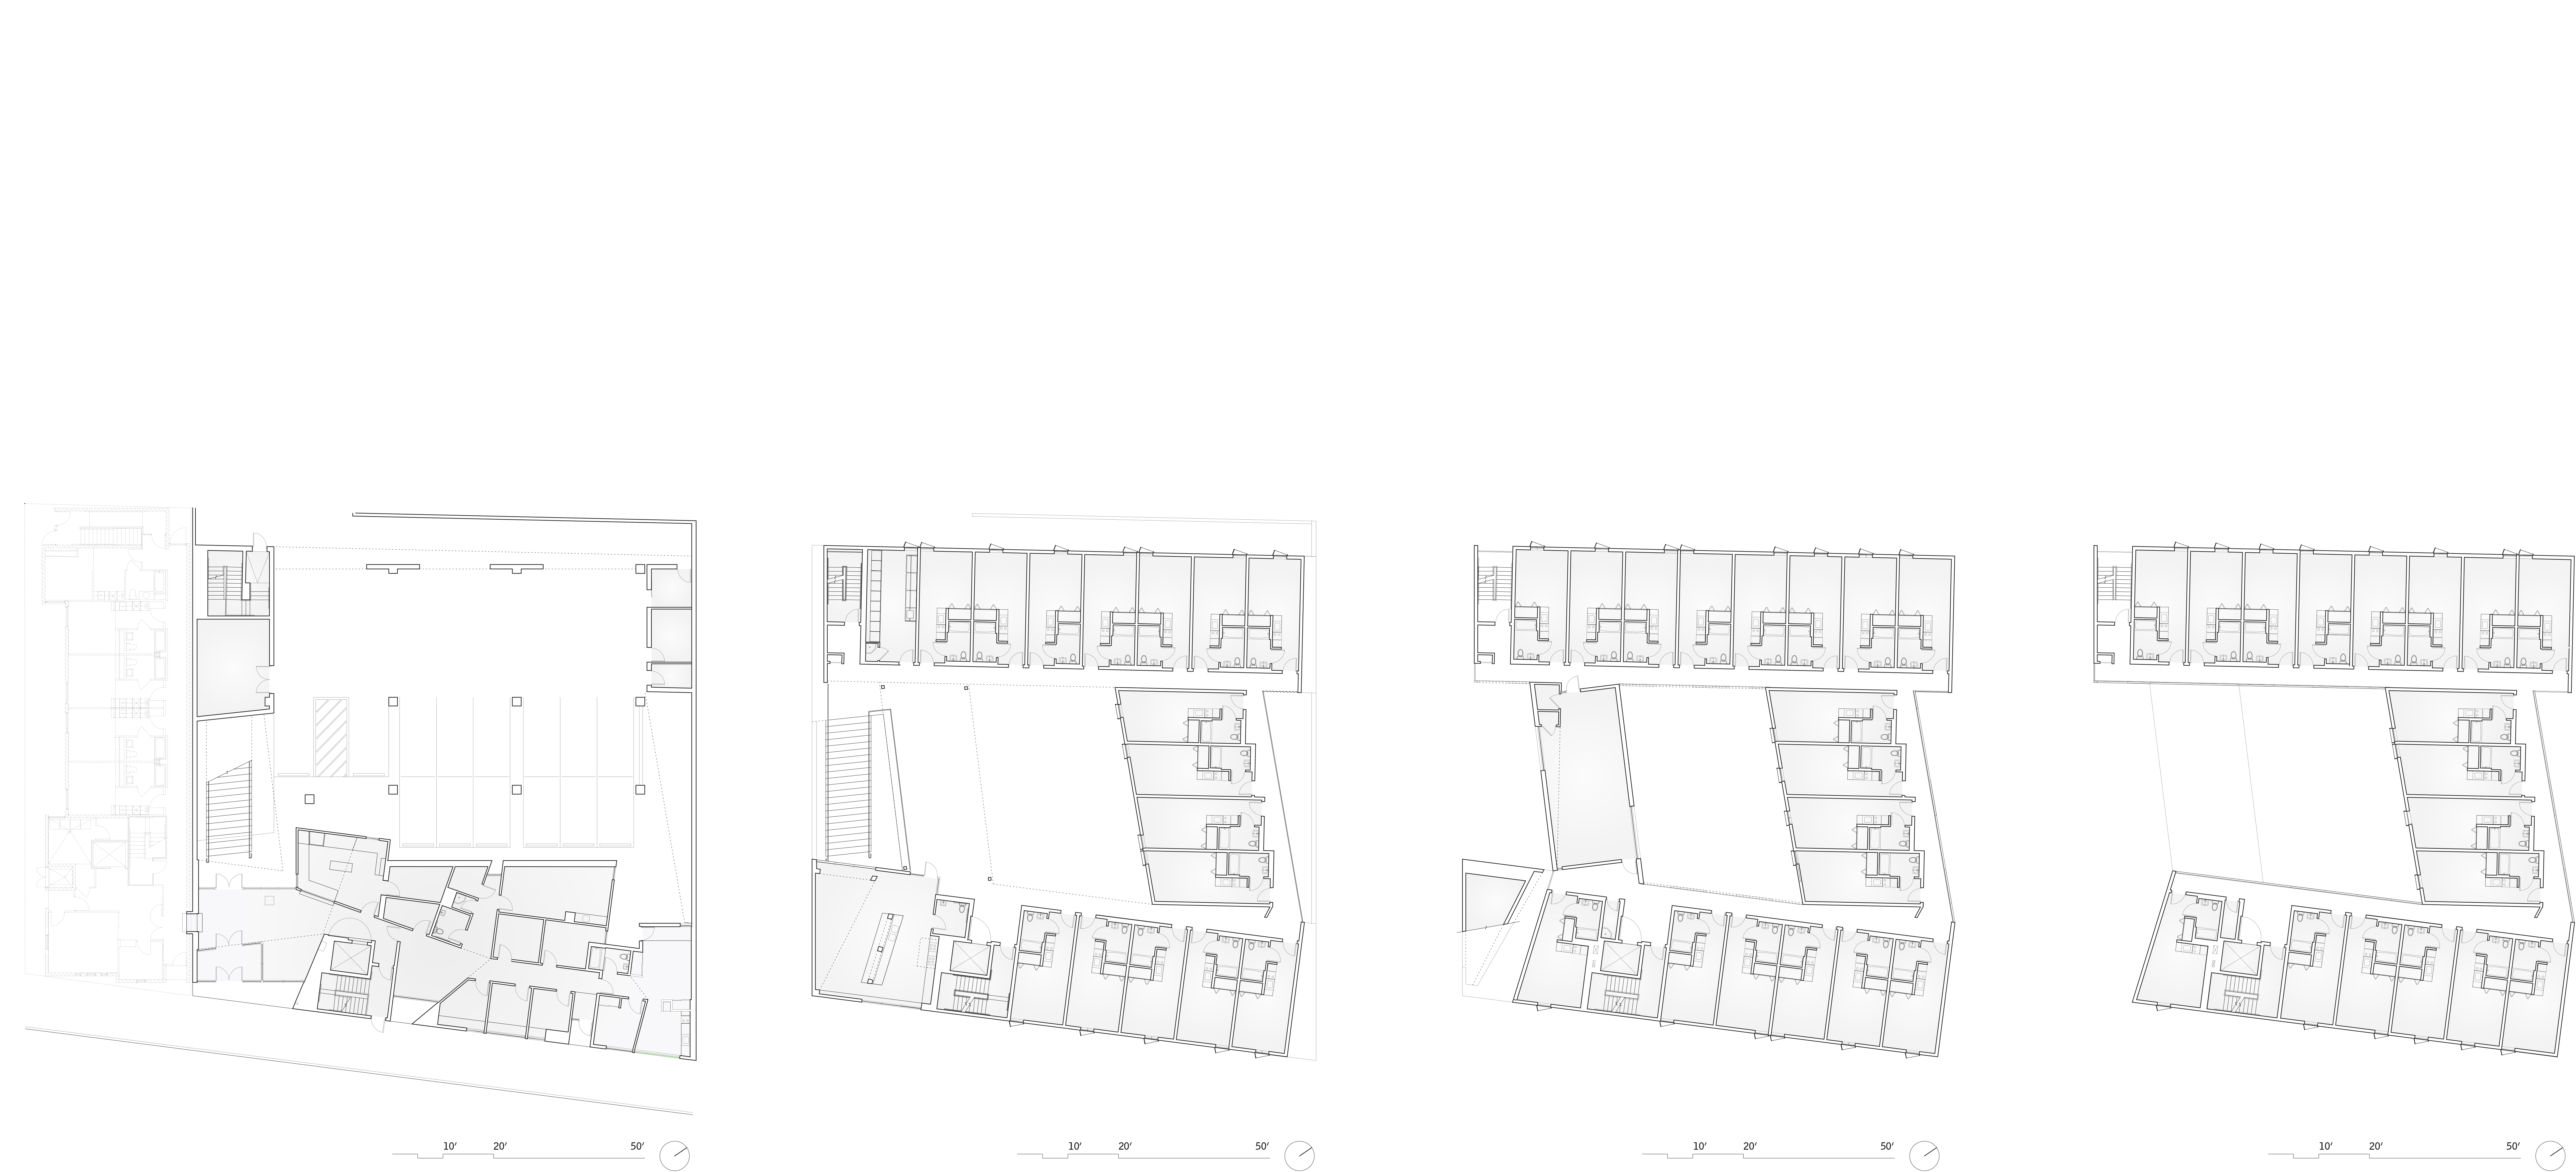 Social Transparency Projects On Housing - Columbia GSAPP on